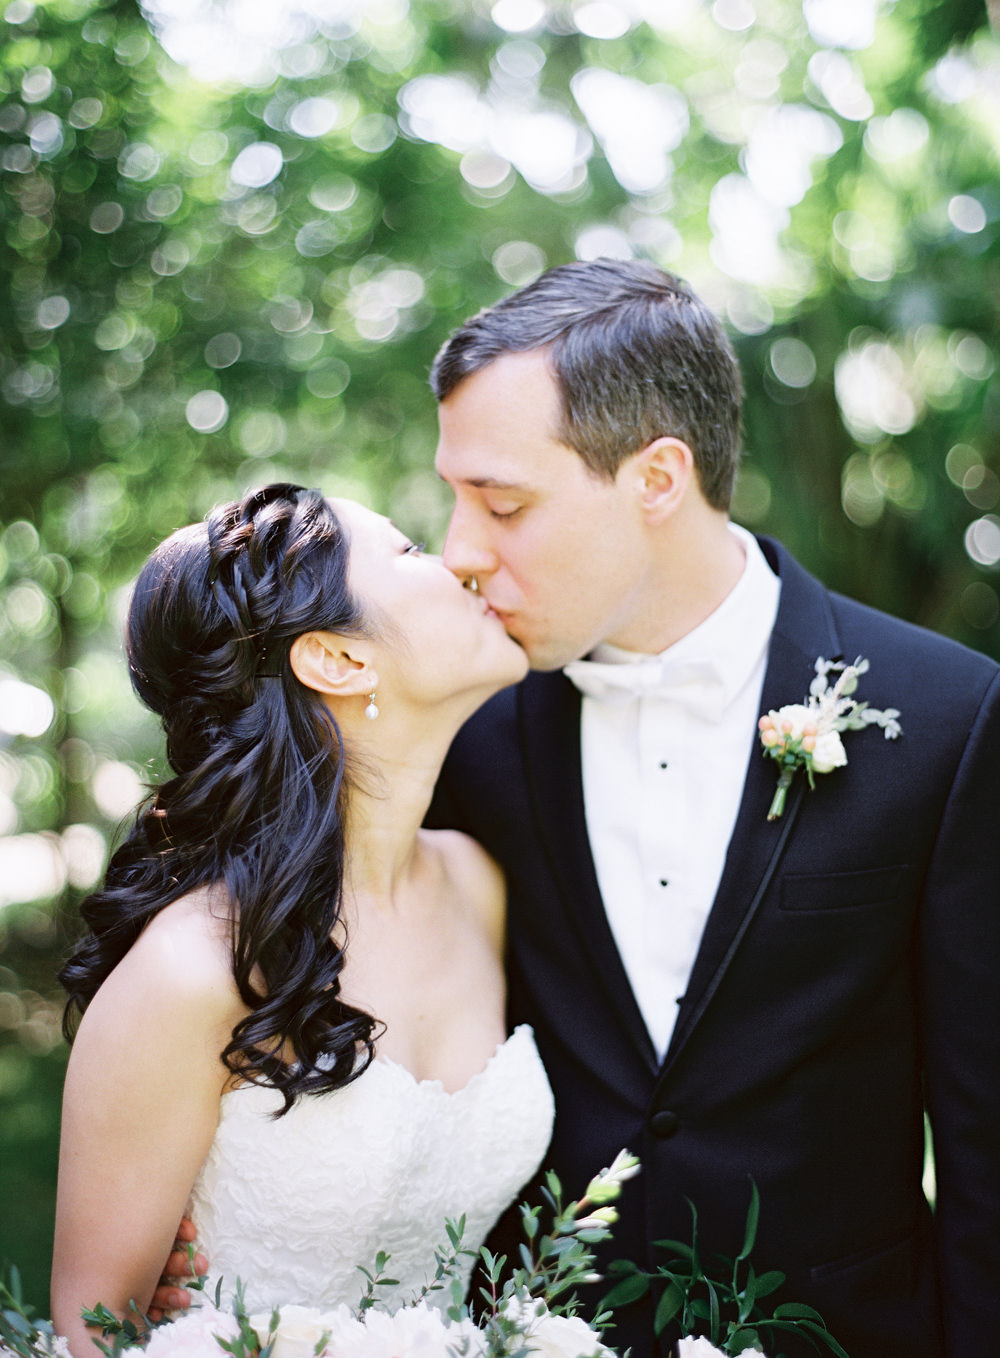 RomanticGardenWedding_WhiskersandWillow_041.jpg